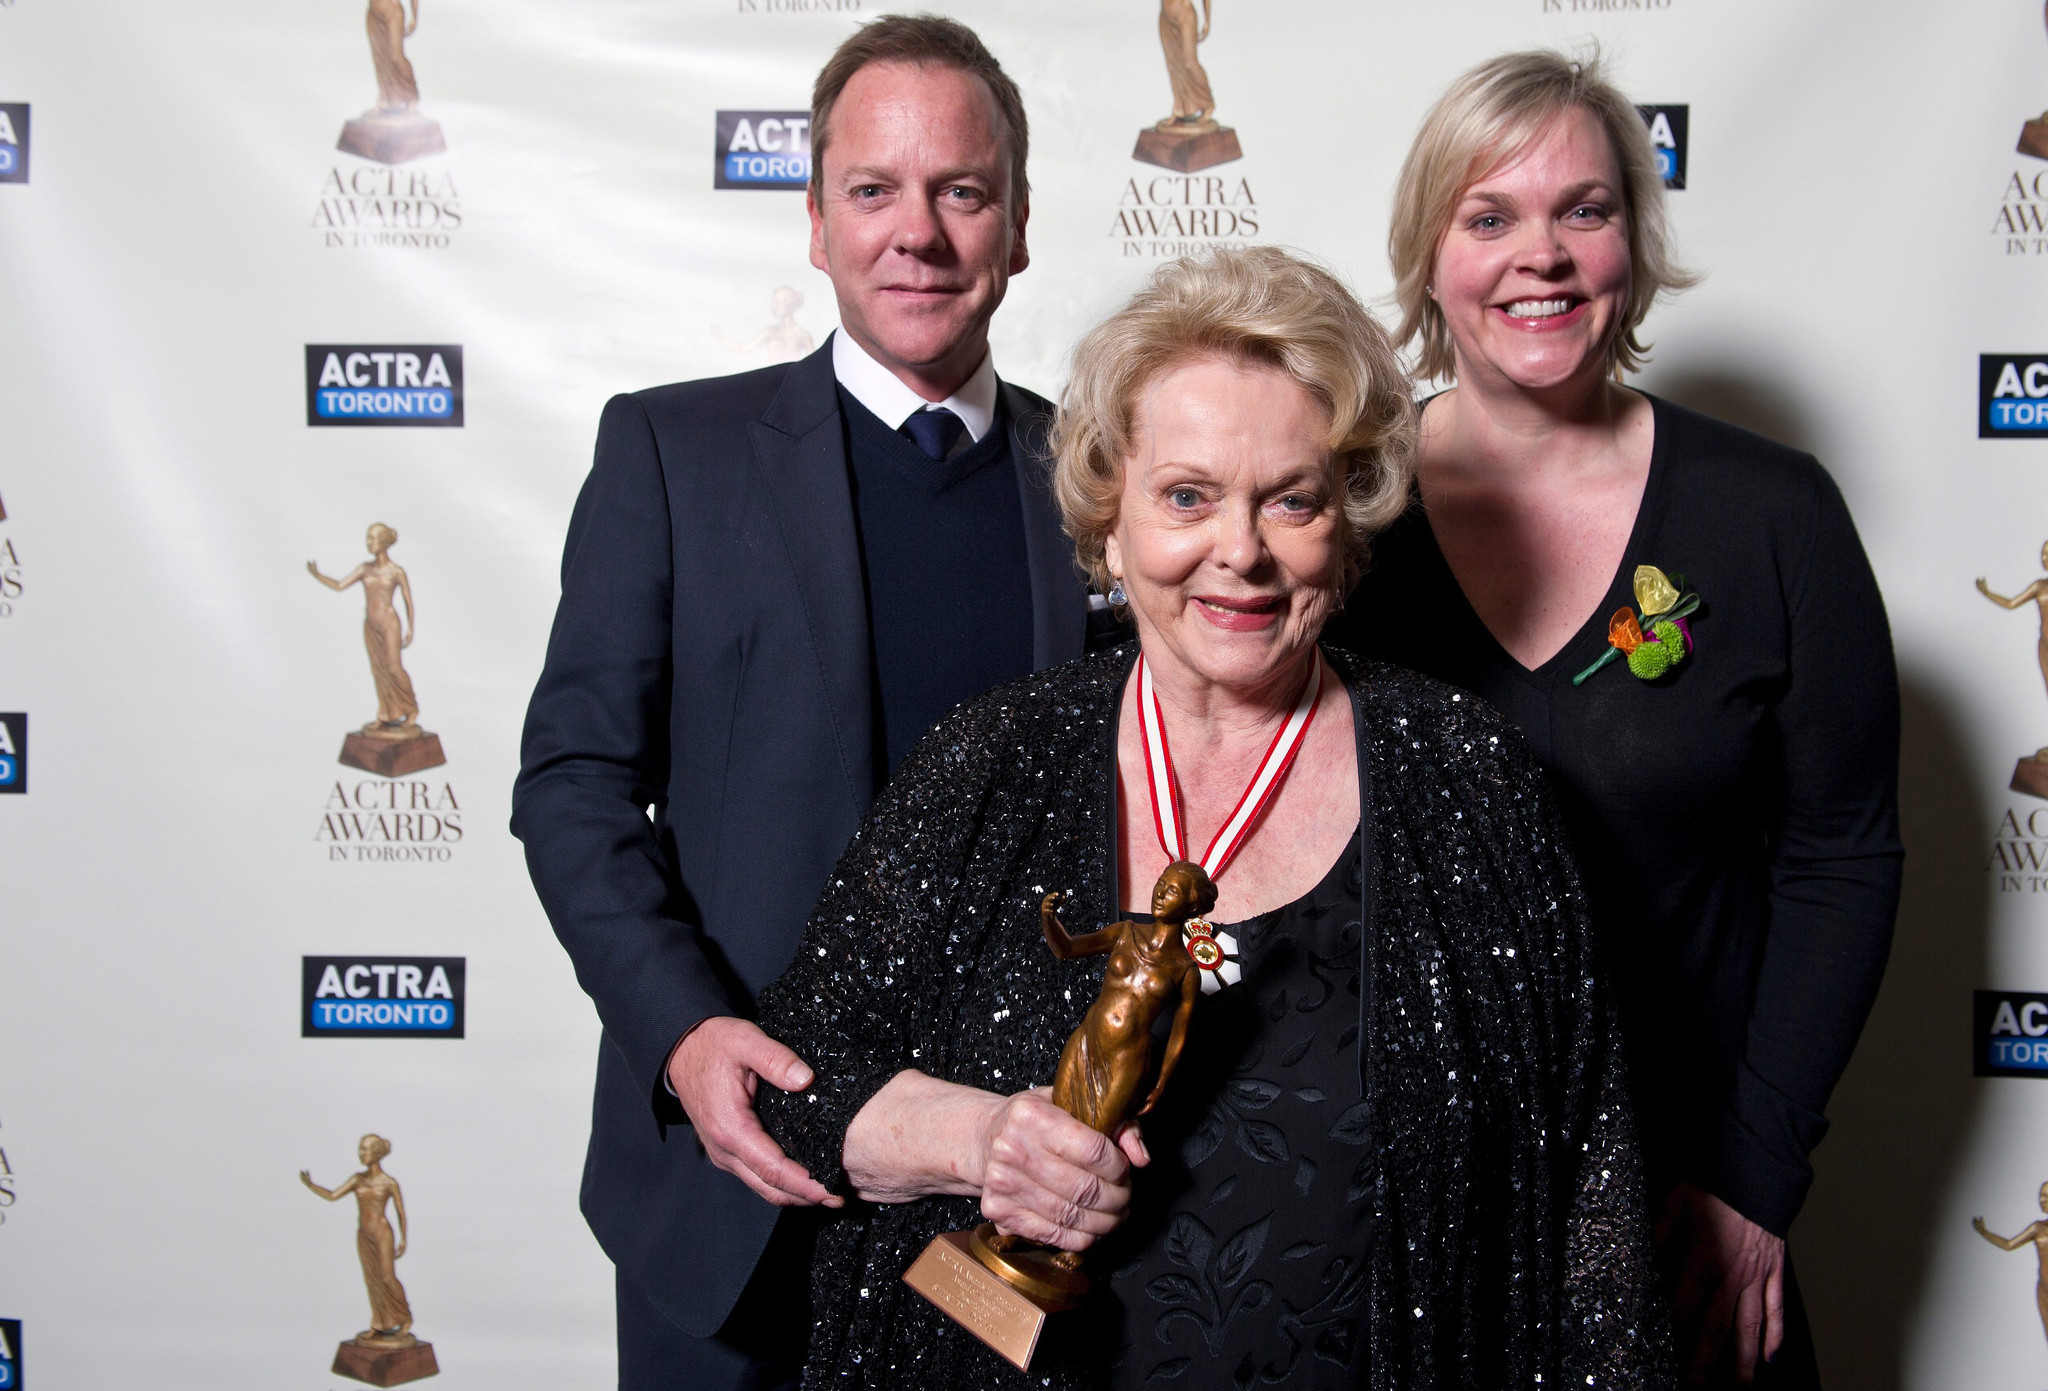 Kiefer Sutherland mourns loss of mother, Shirley Douglas, at age 86